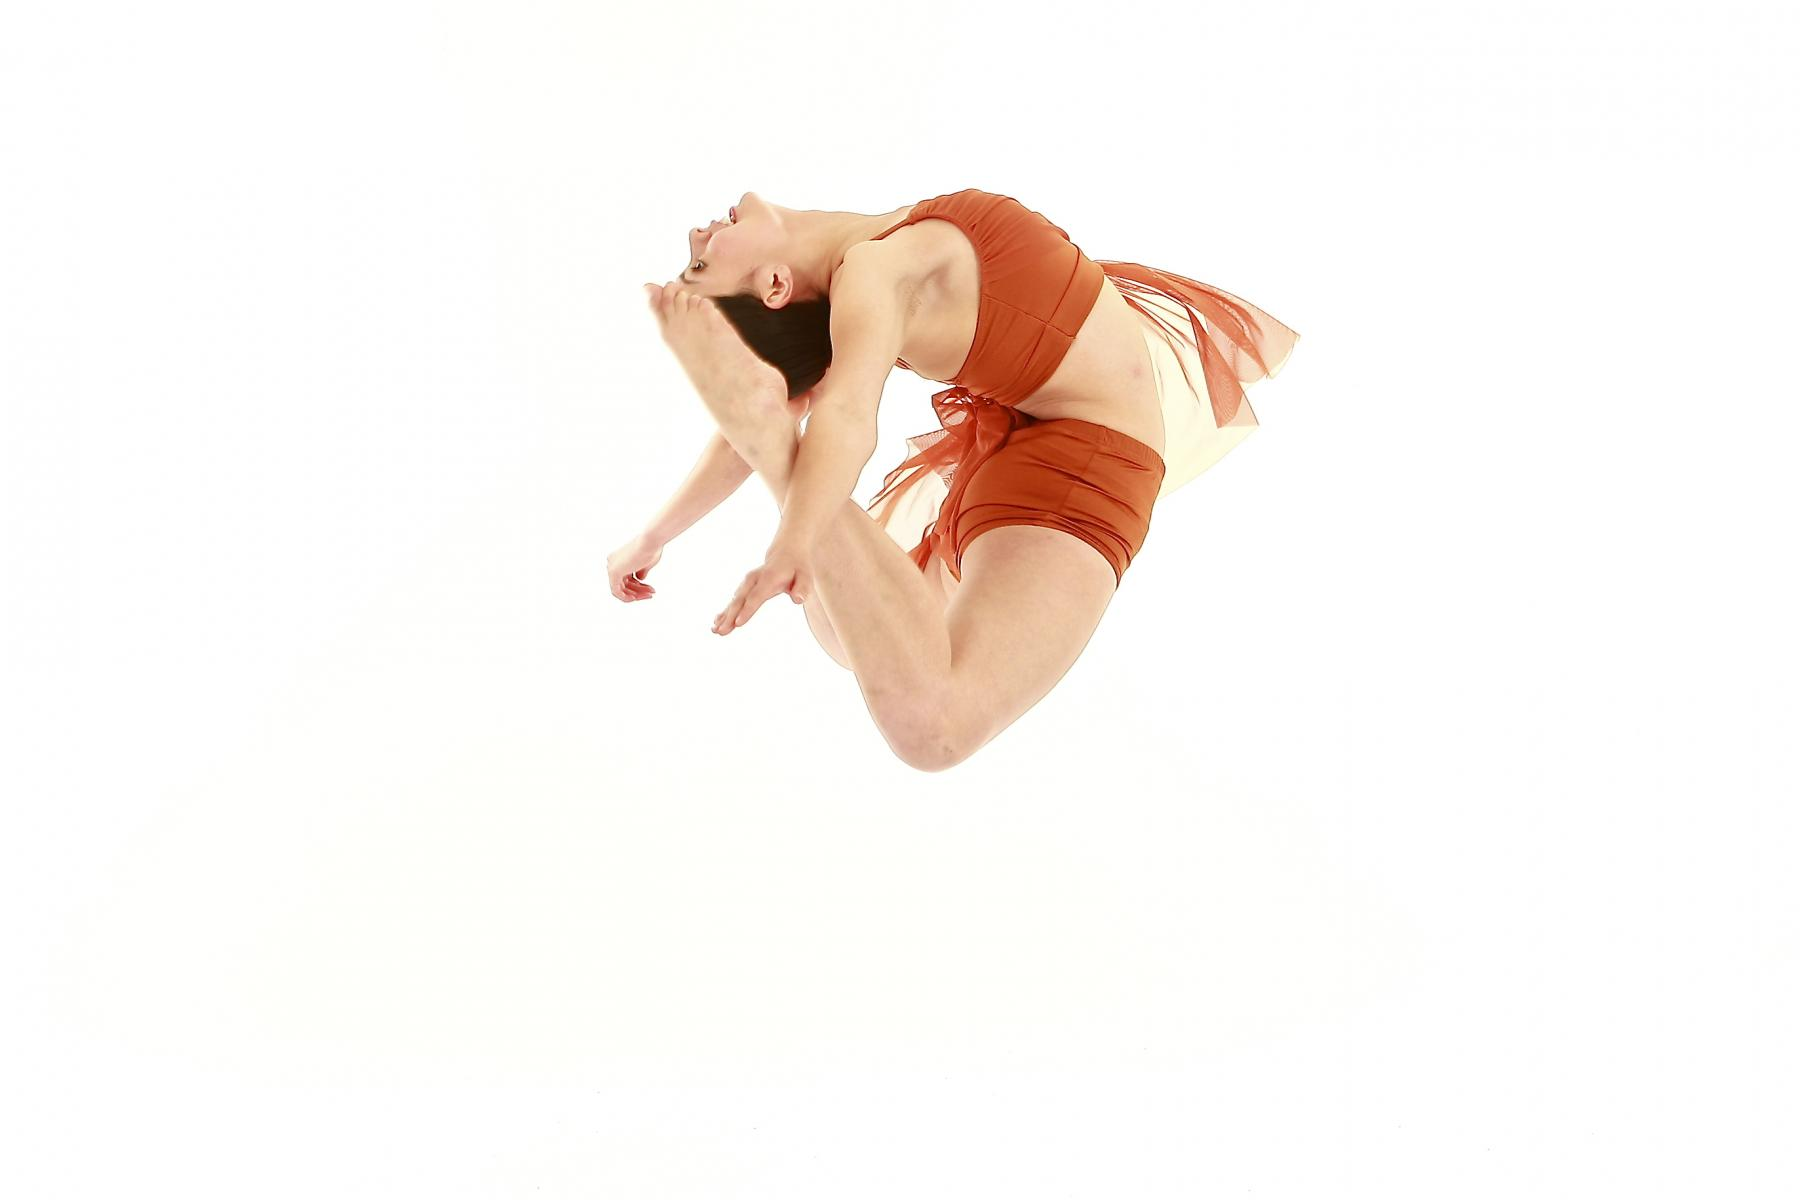 Los Angeles dance photography